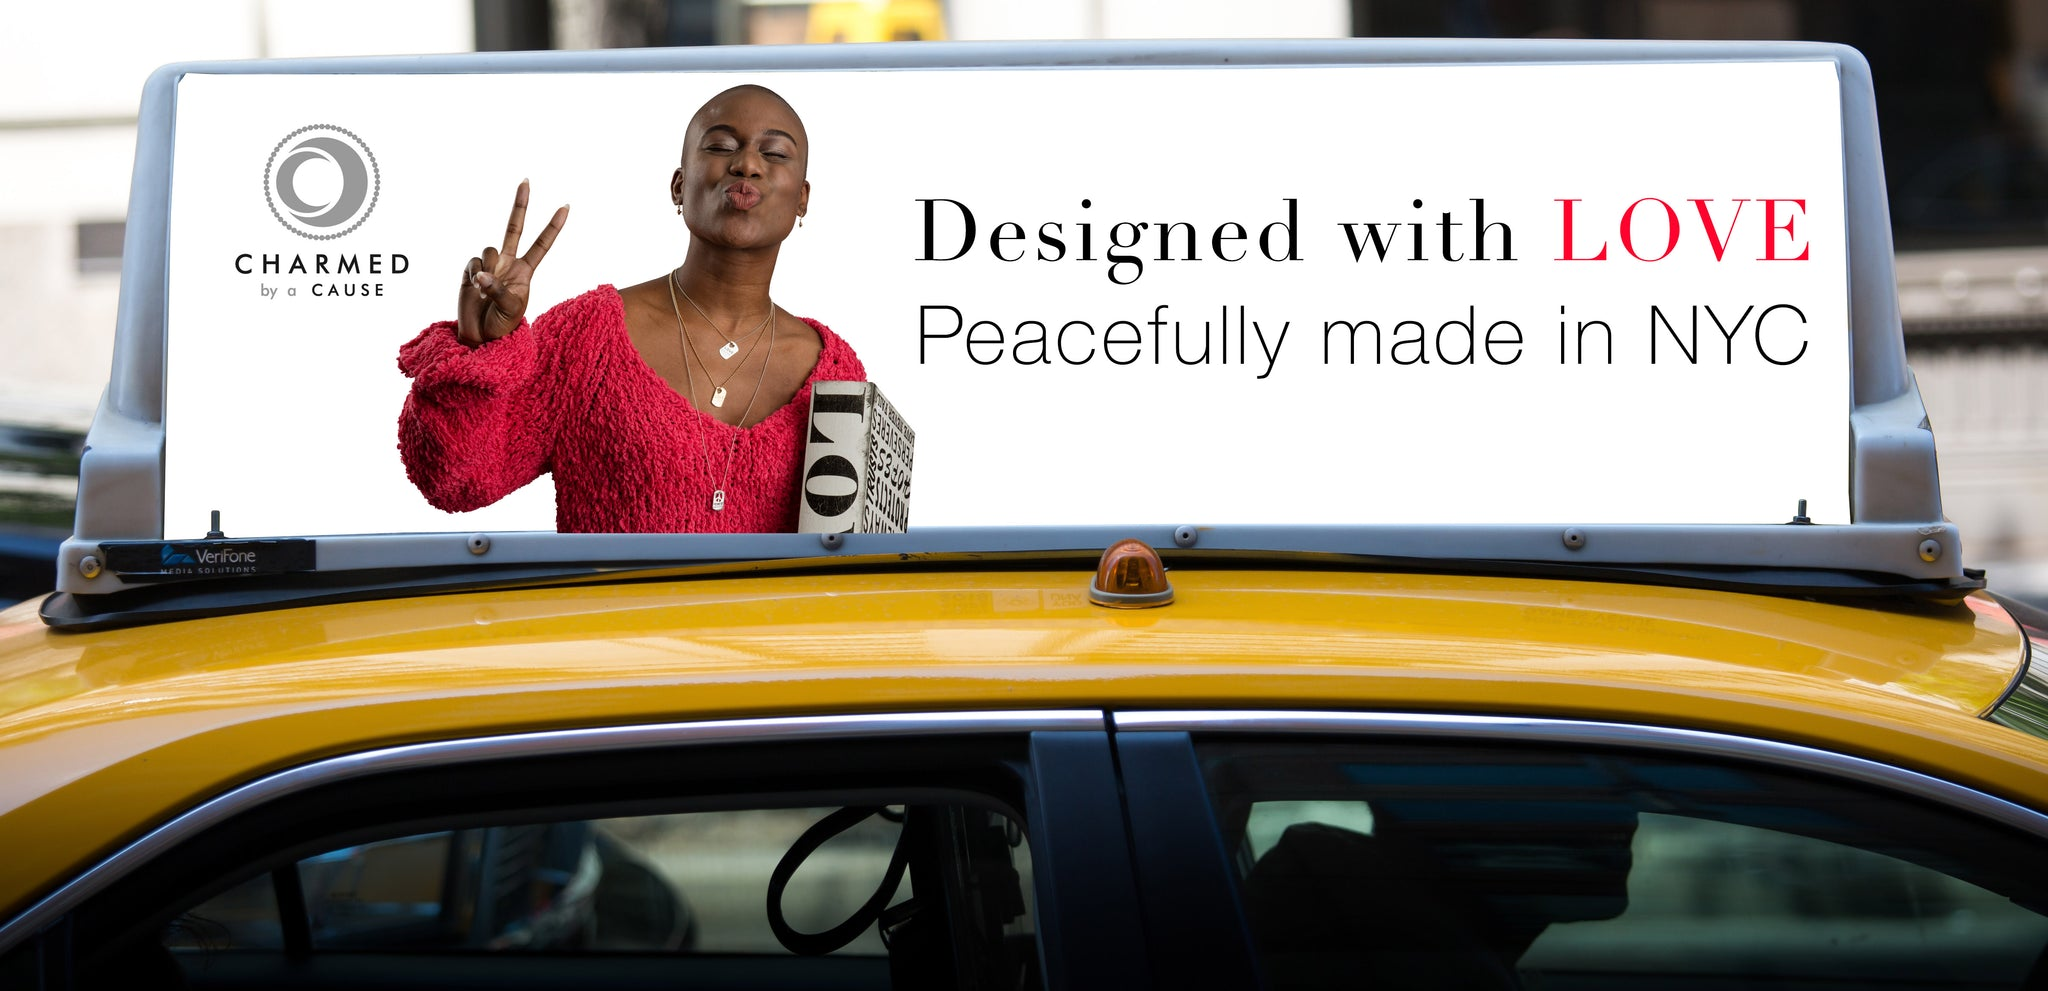 designed with love made peacefully in NYC